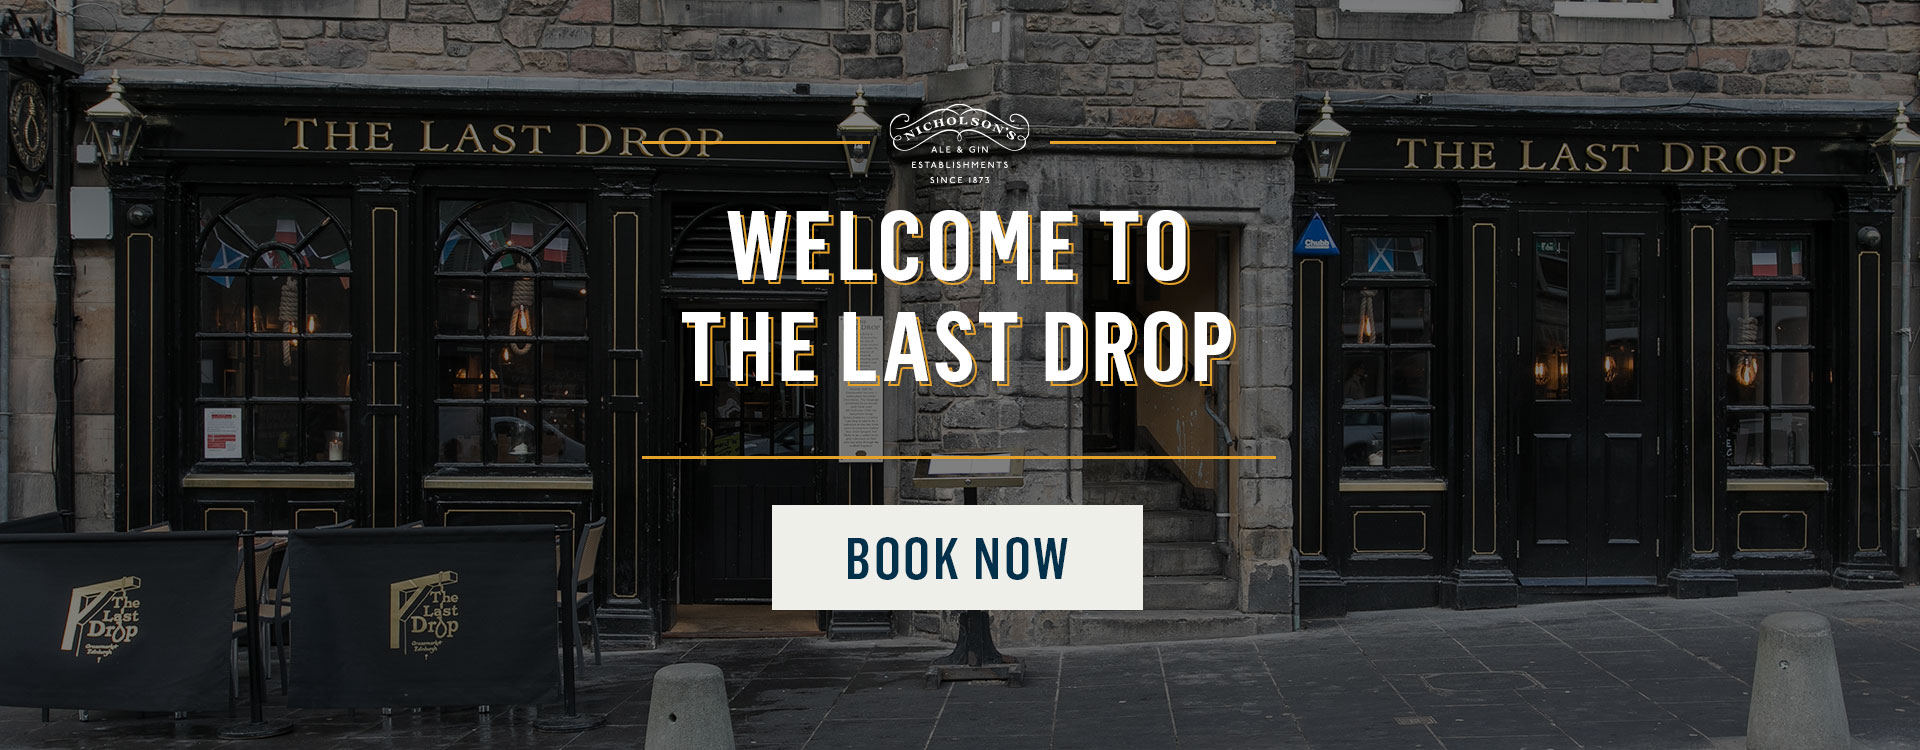 Welcome to The Last Drop - Book Now